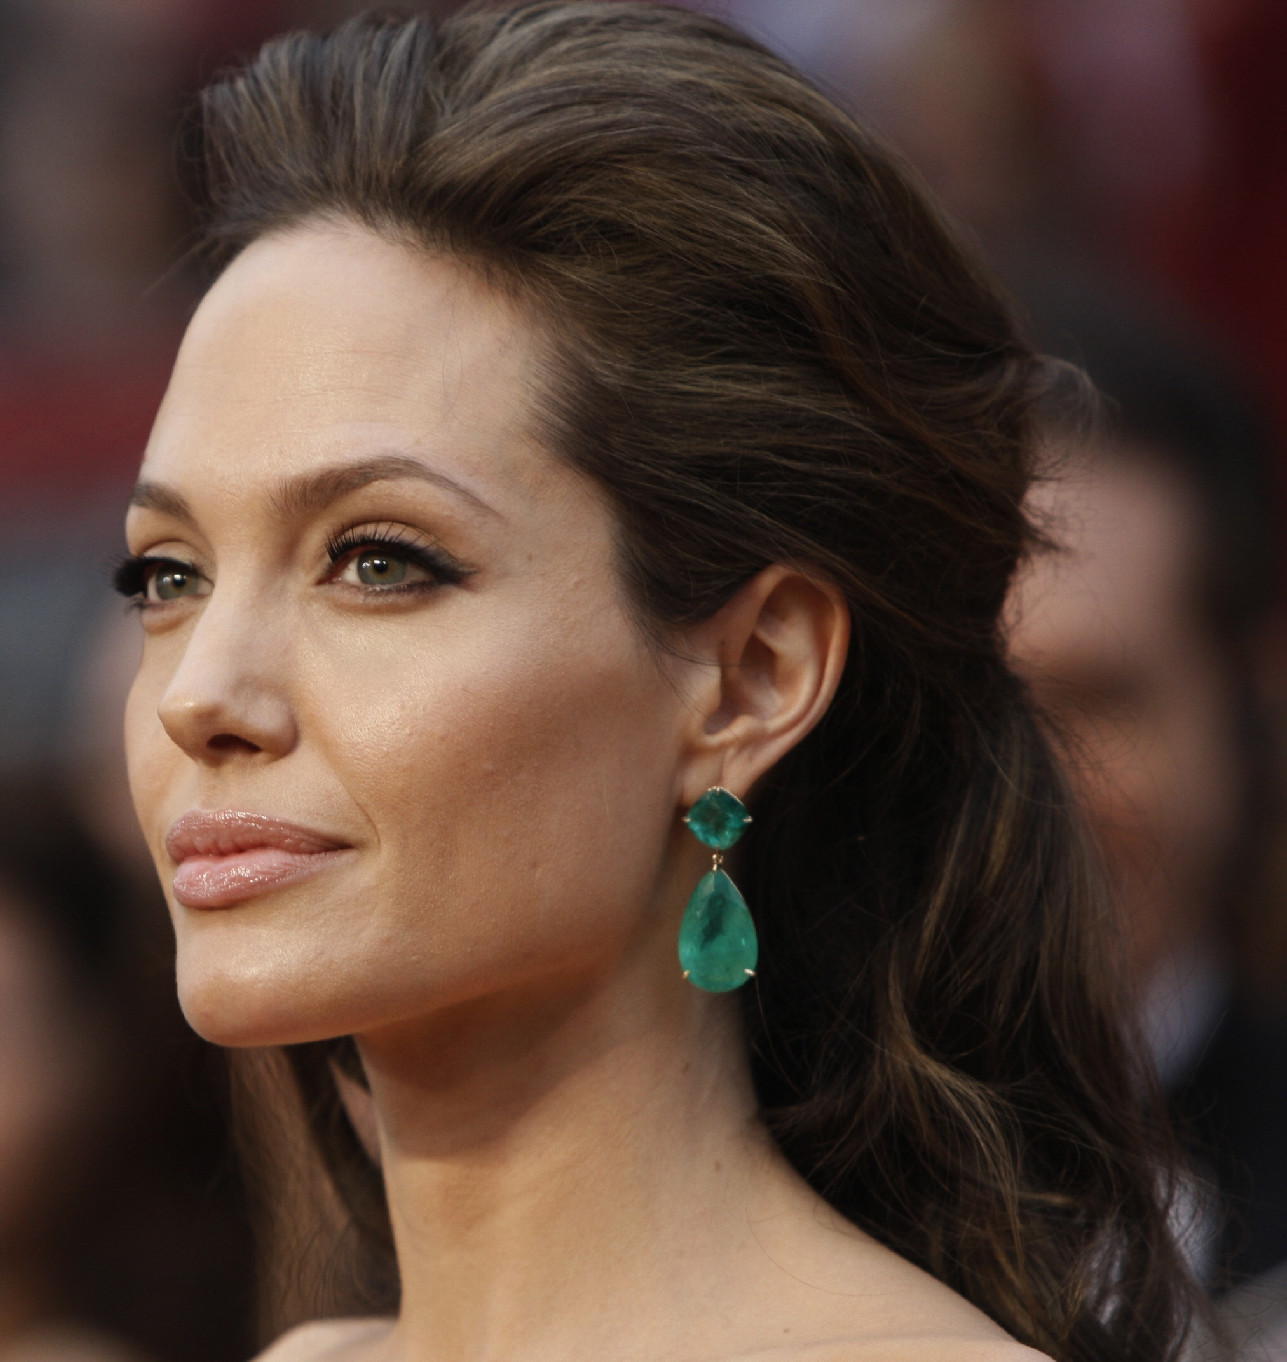 http://2.bp.blogspot.com/-1yaXsoxOY14/Tj3HN5FTCBI/AAAAAAAAAK8/3m5htEqE2Pg/s1600/angelina-jolie-earrings_edited-1.jpg